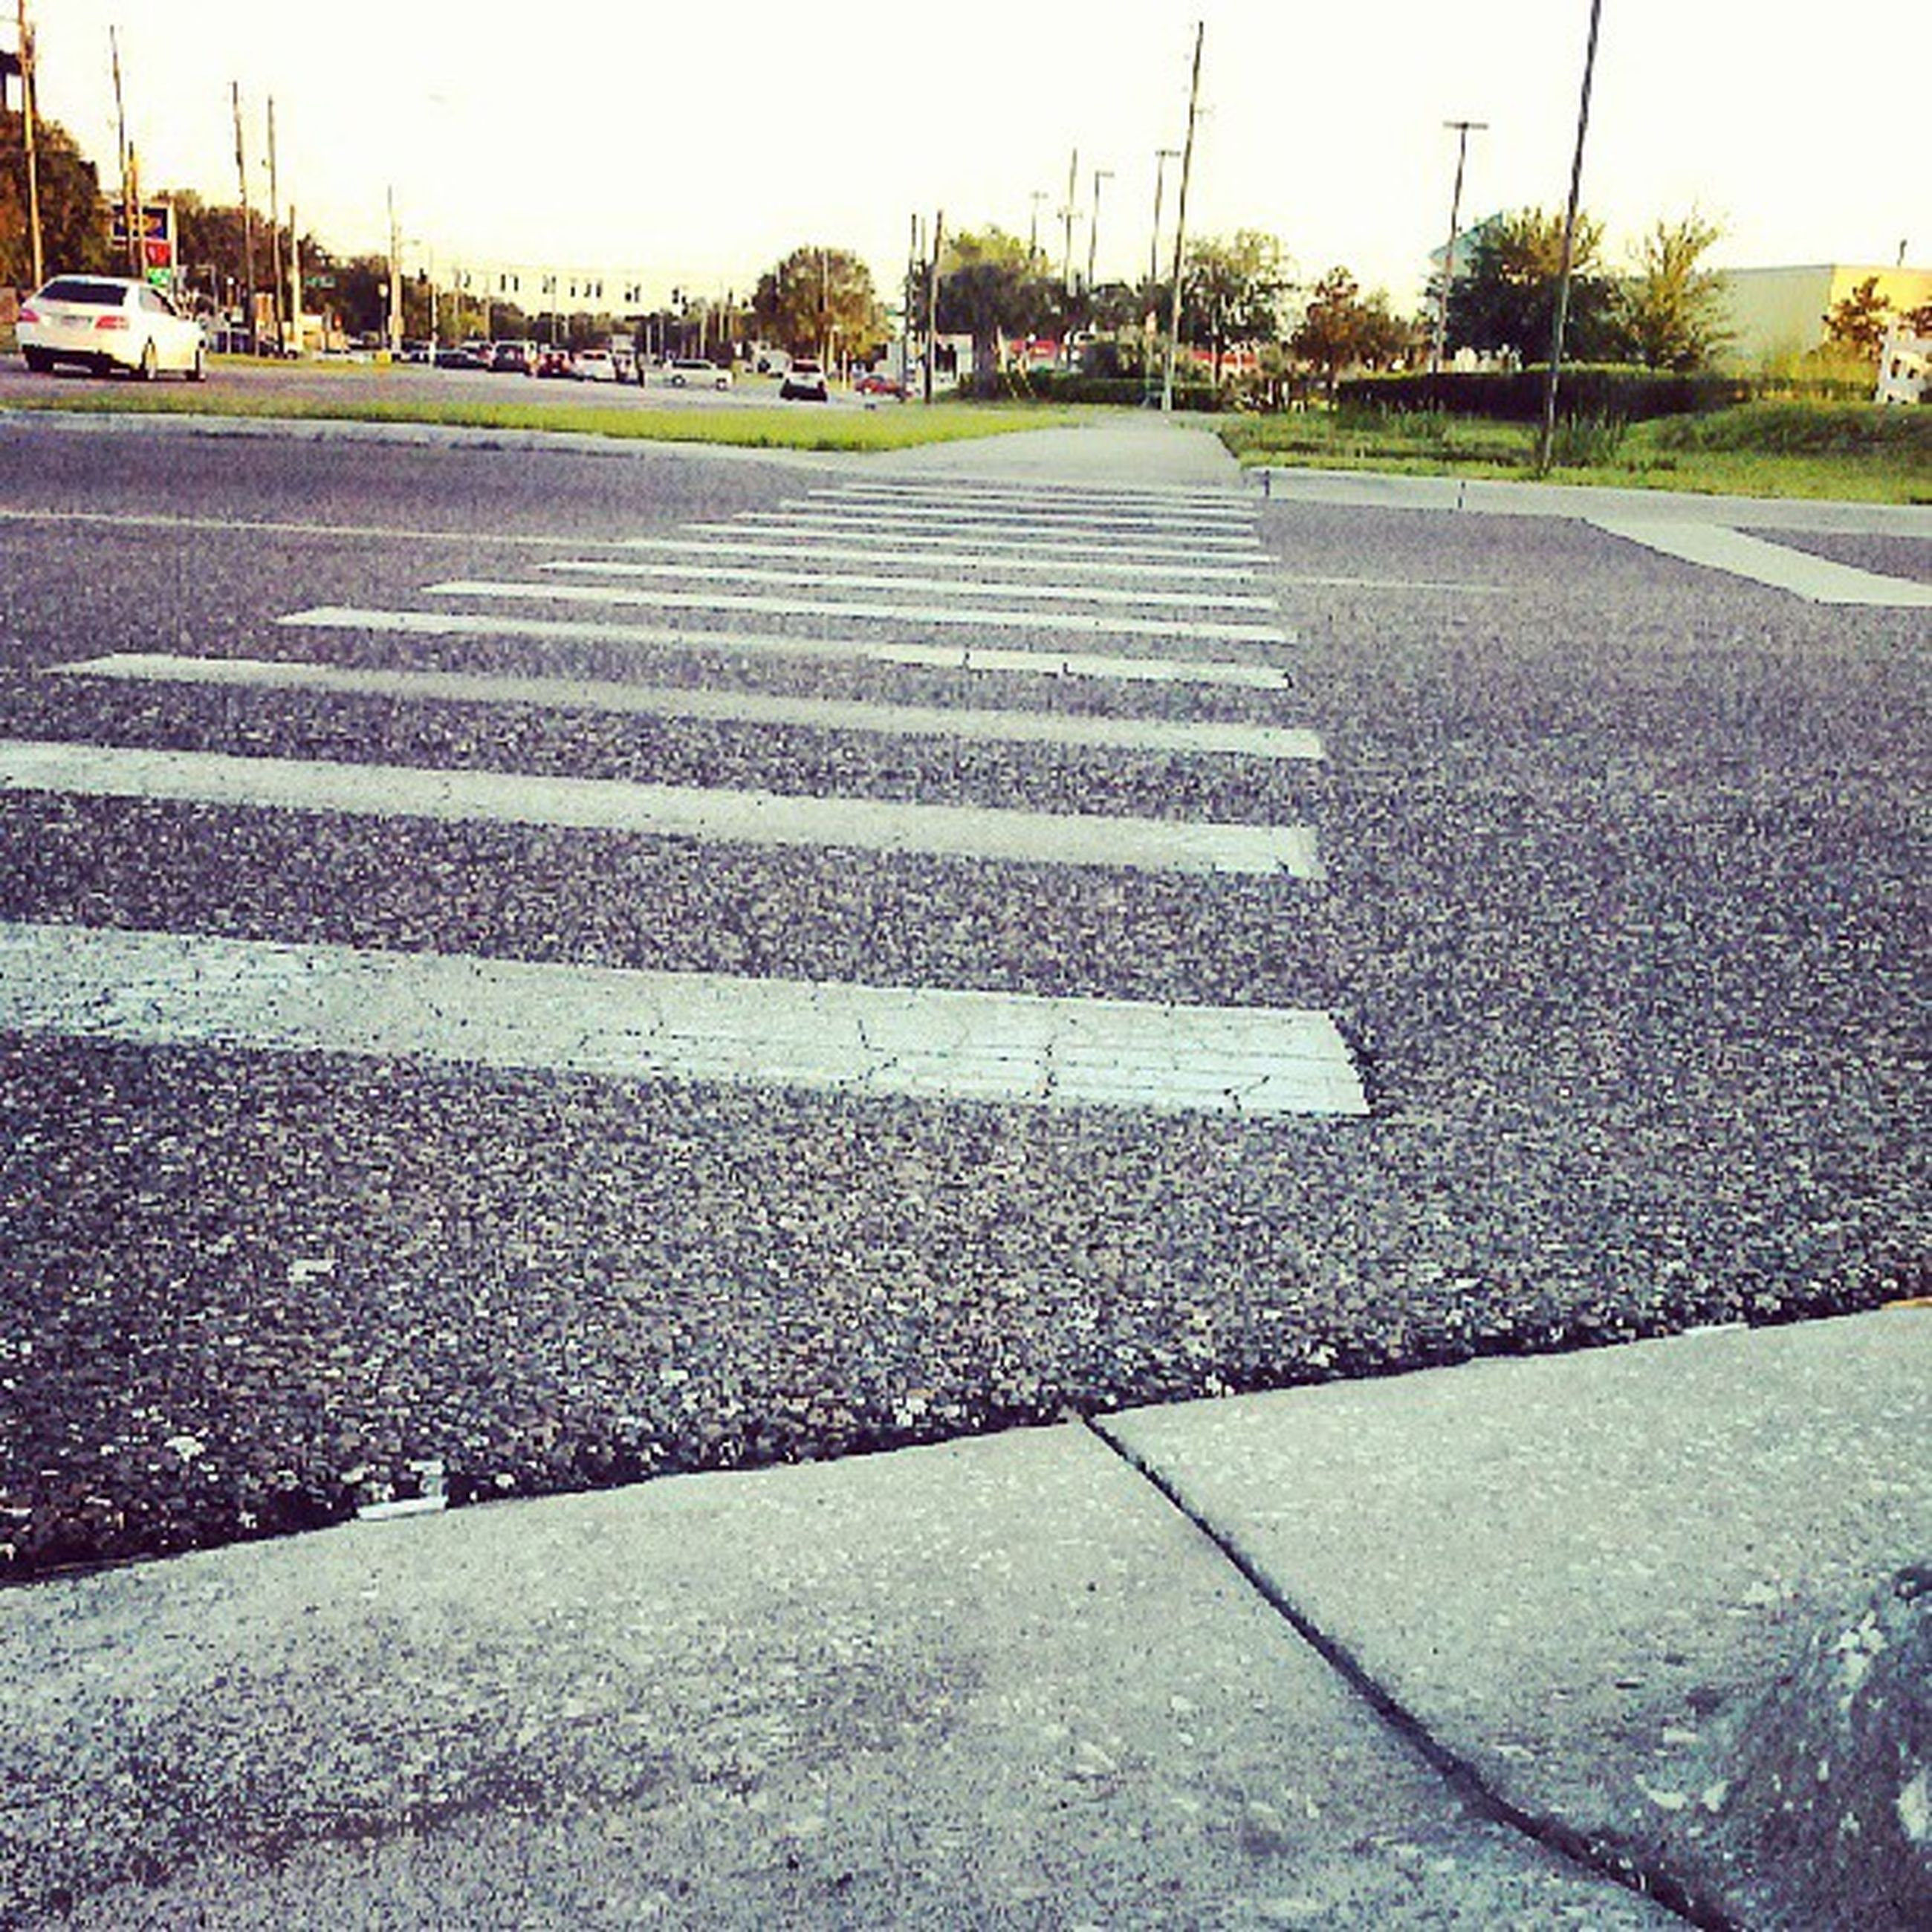 transportation, road marking, asphalt, road, the way forward, street, surface level, diminishing perspective, vanishing point, car, empty, day, outdoors, empty road, no people, mode of transport, dividing line, land vehicle, city, sidewalk